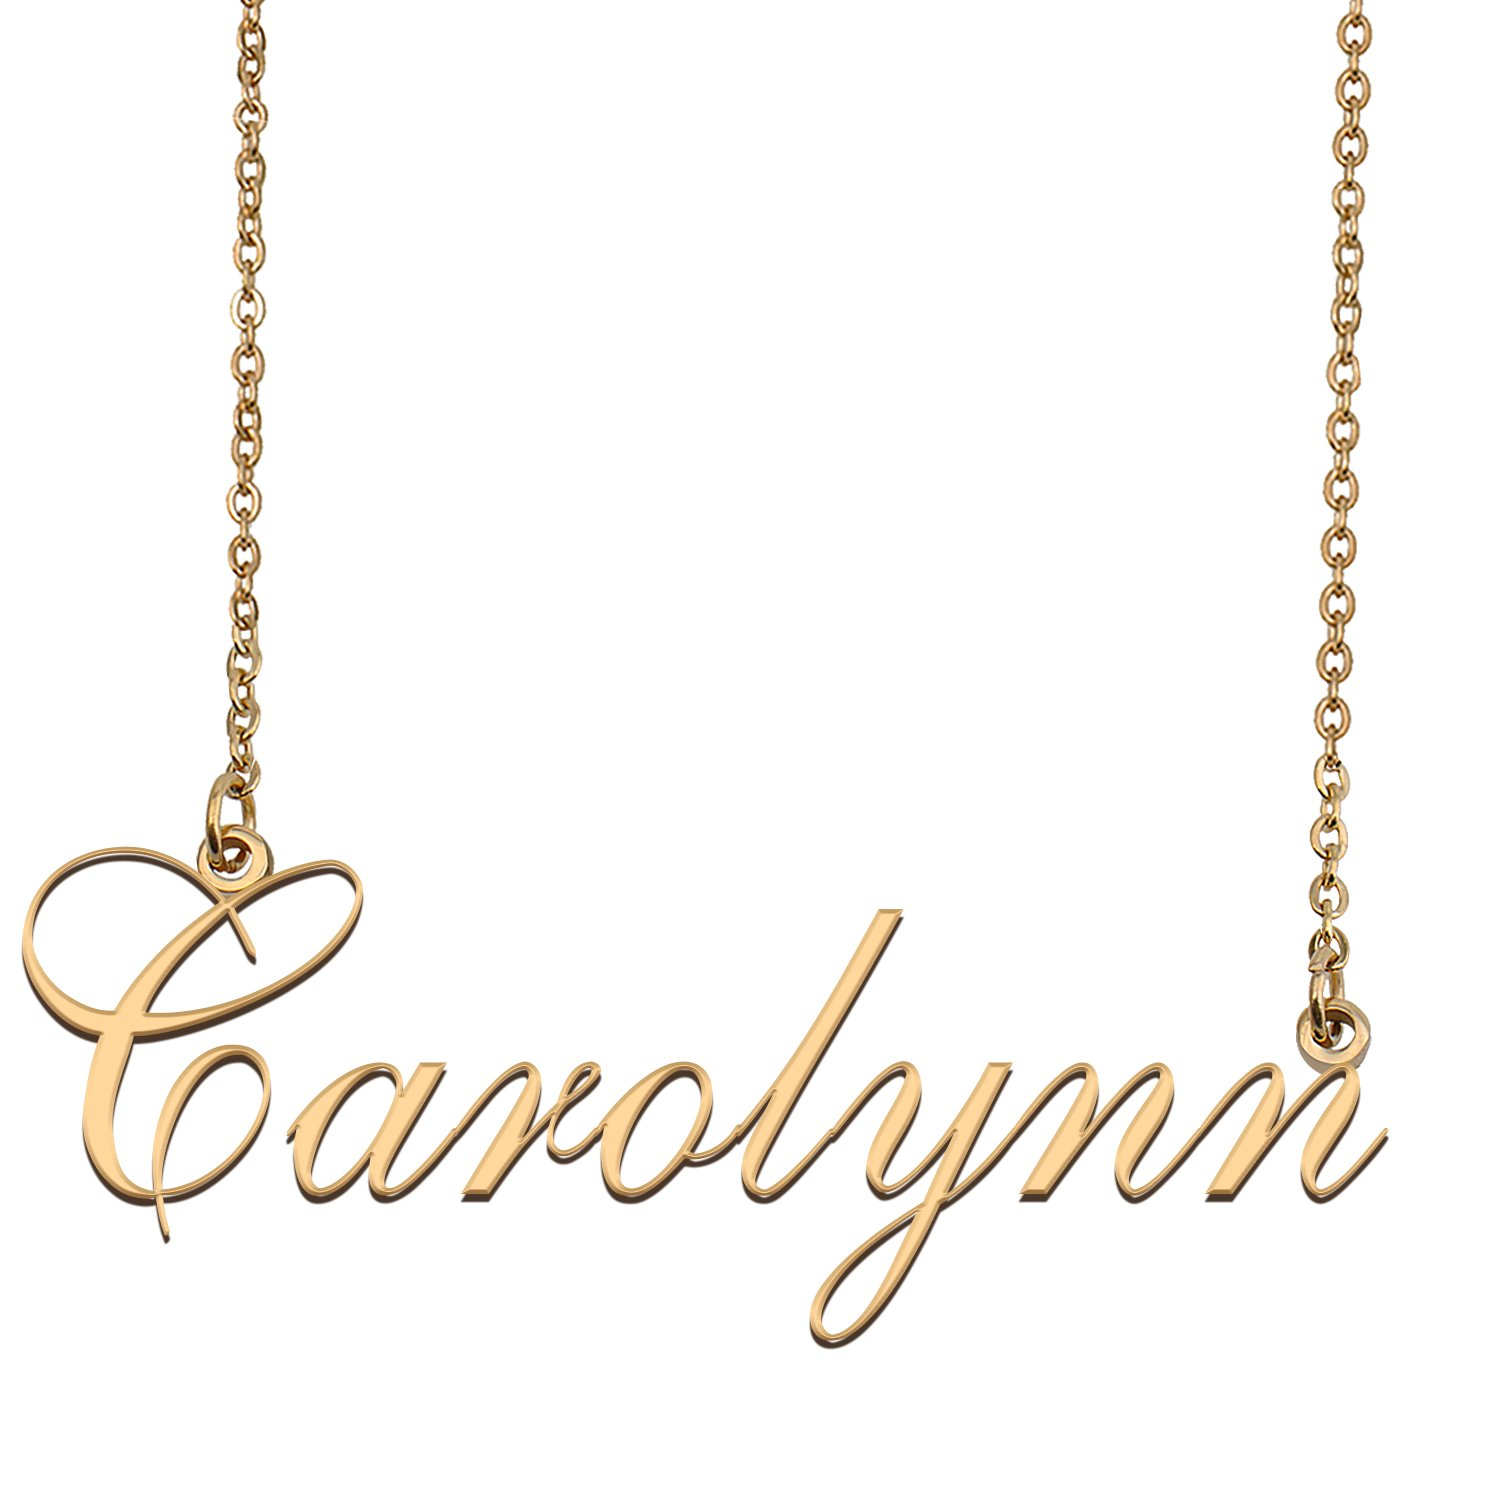 Custom Made Dainty My Name Necklace Best Friendship Jewelry Gifts for Her Carolynn